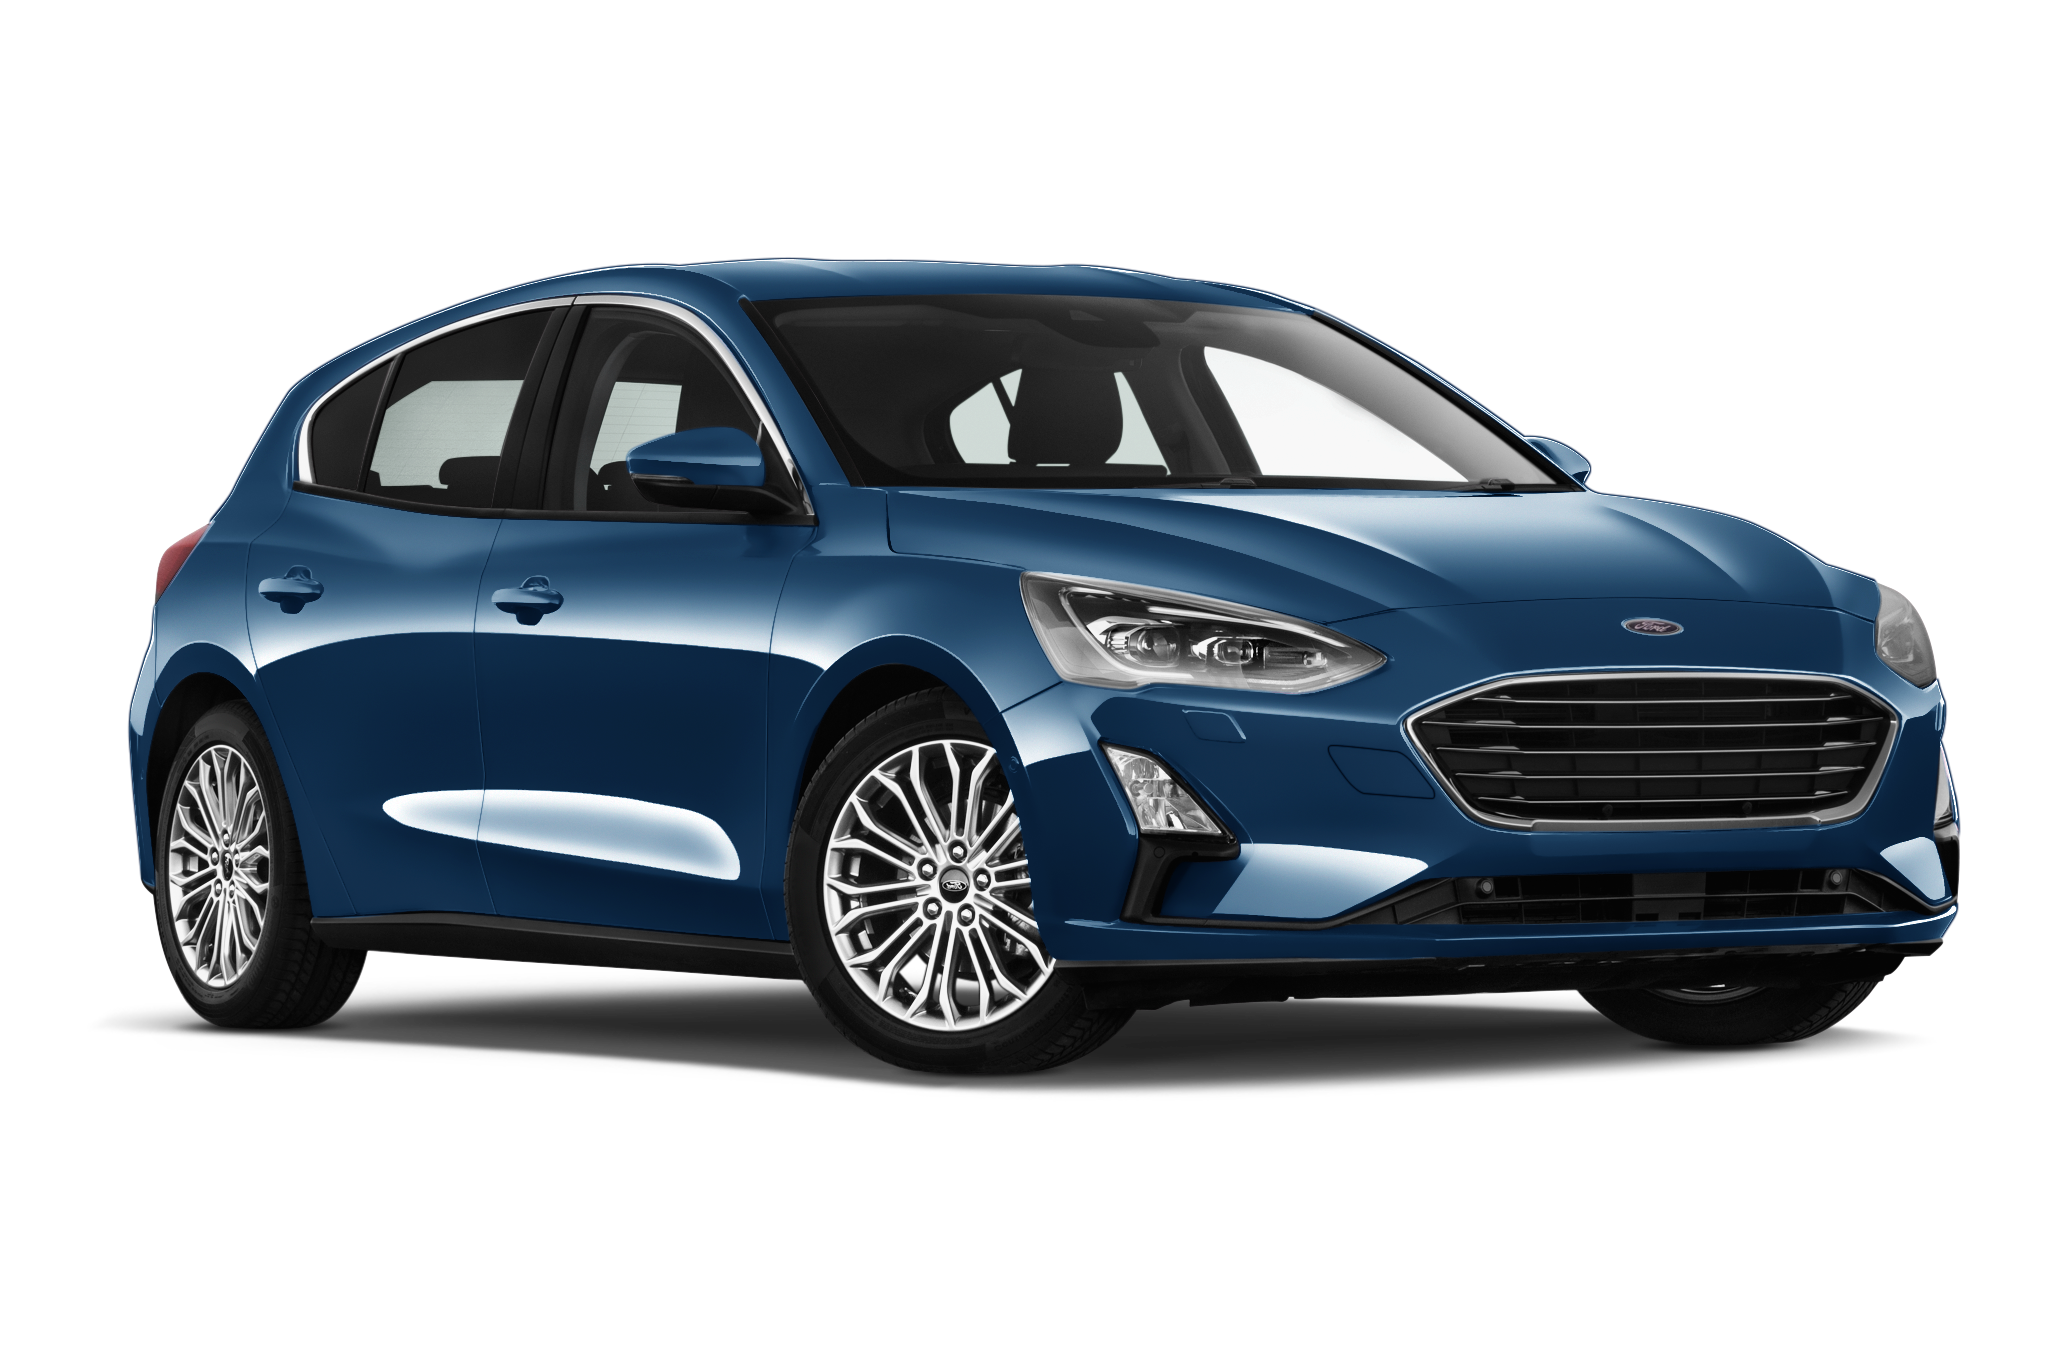 40+ Ford focus specifications uk ideas